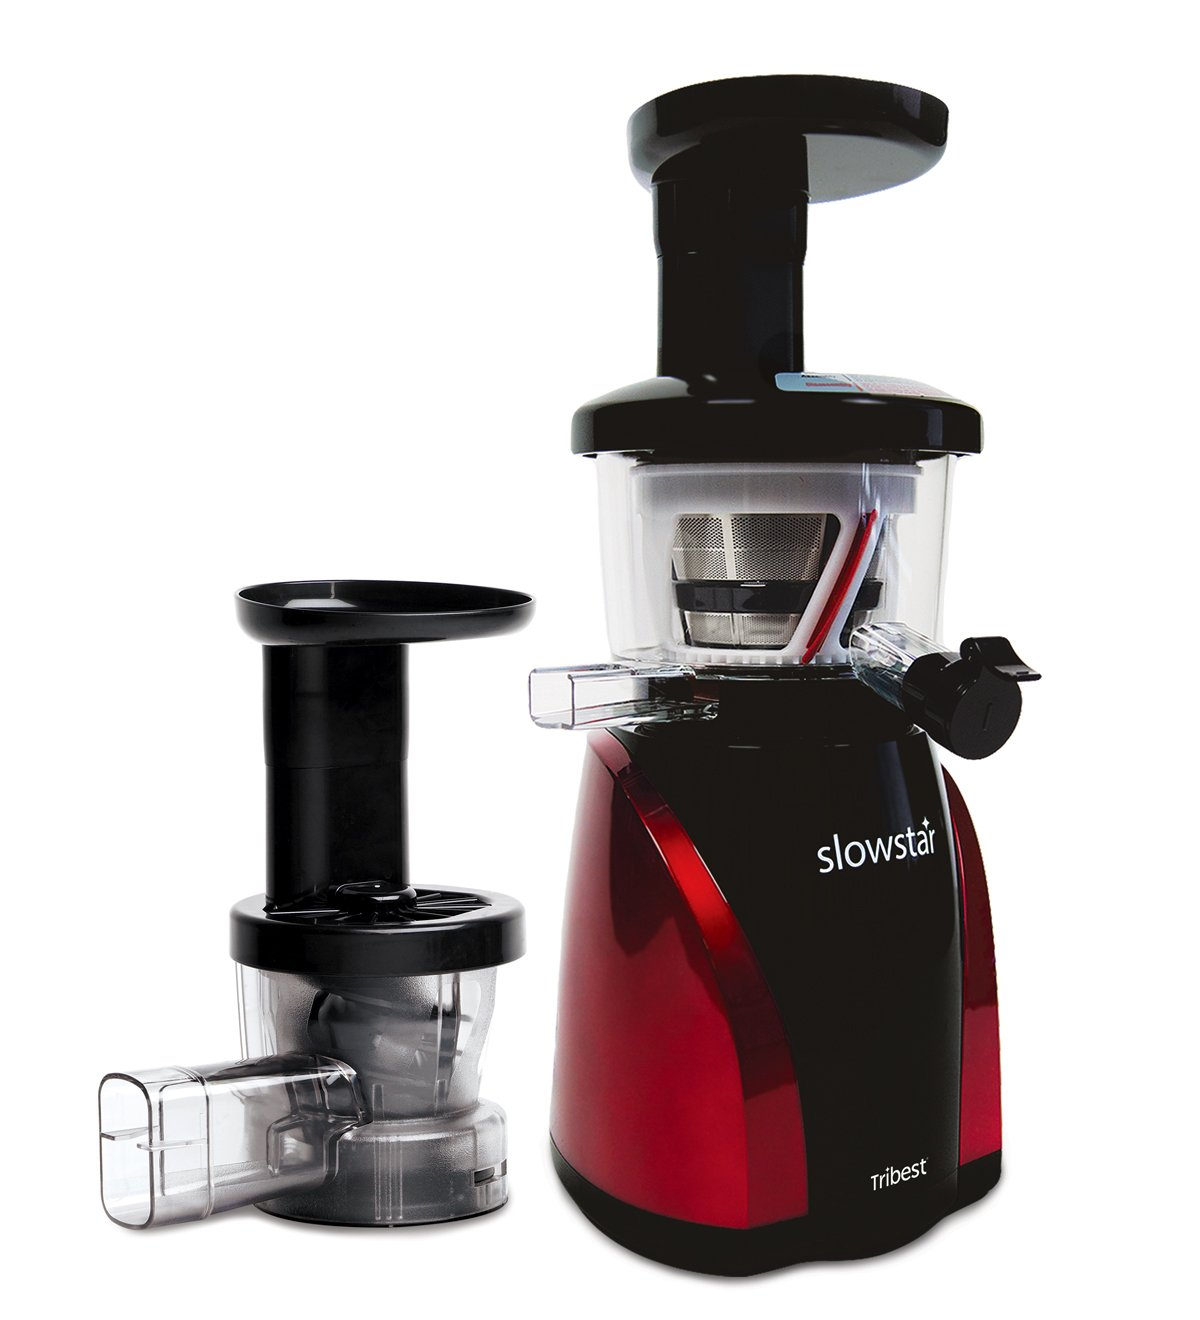 Tribest sw-2000-b slowstar vertical slow cold press juicer and mincer